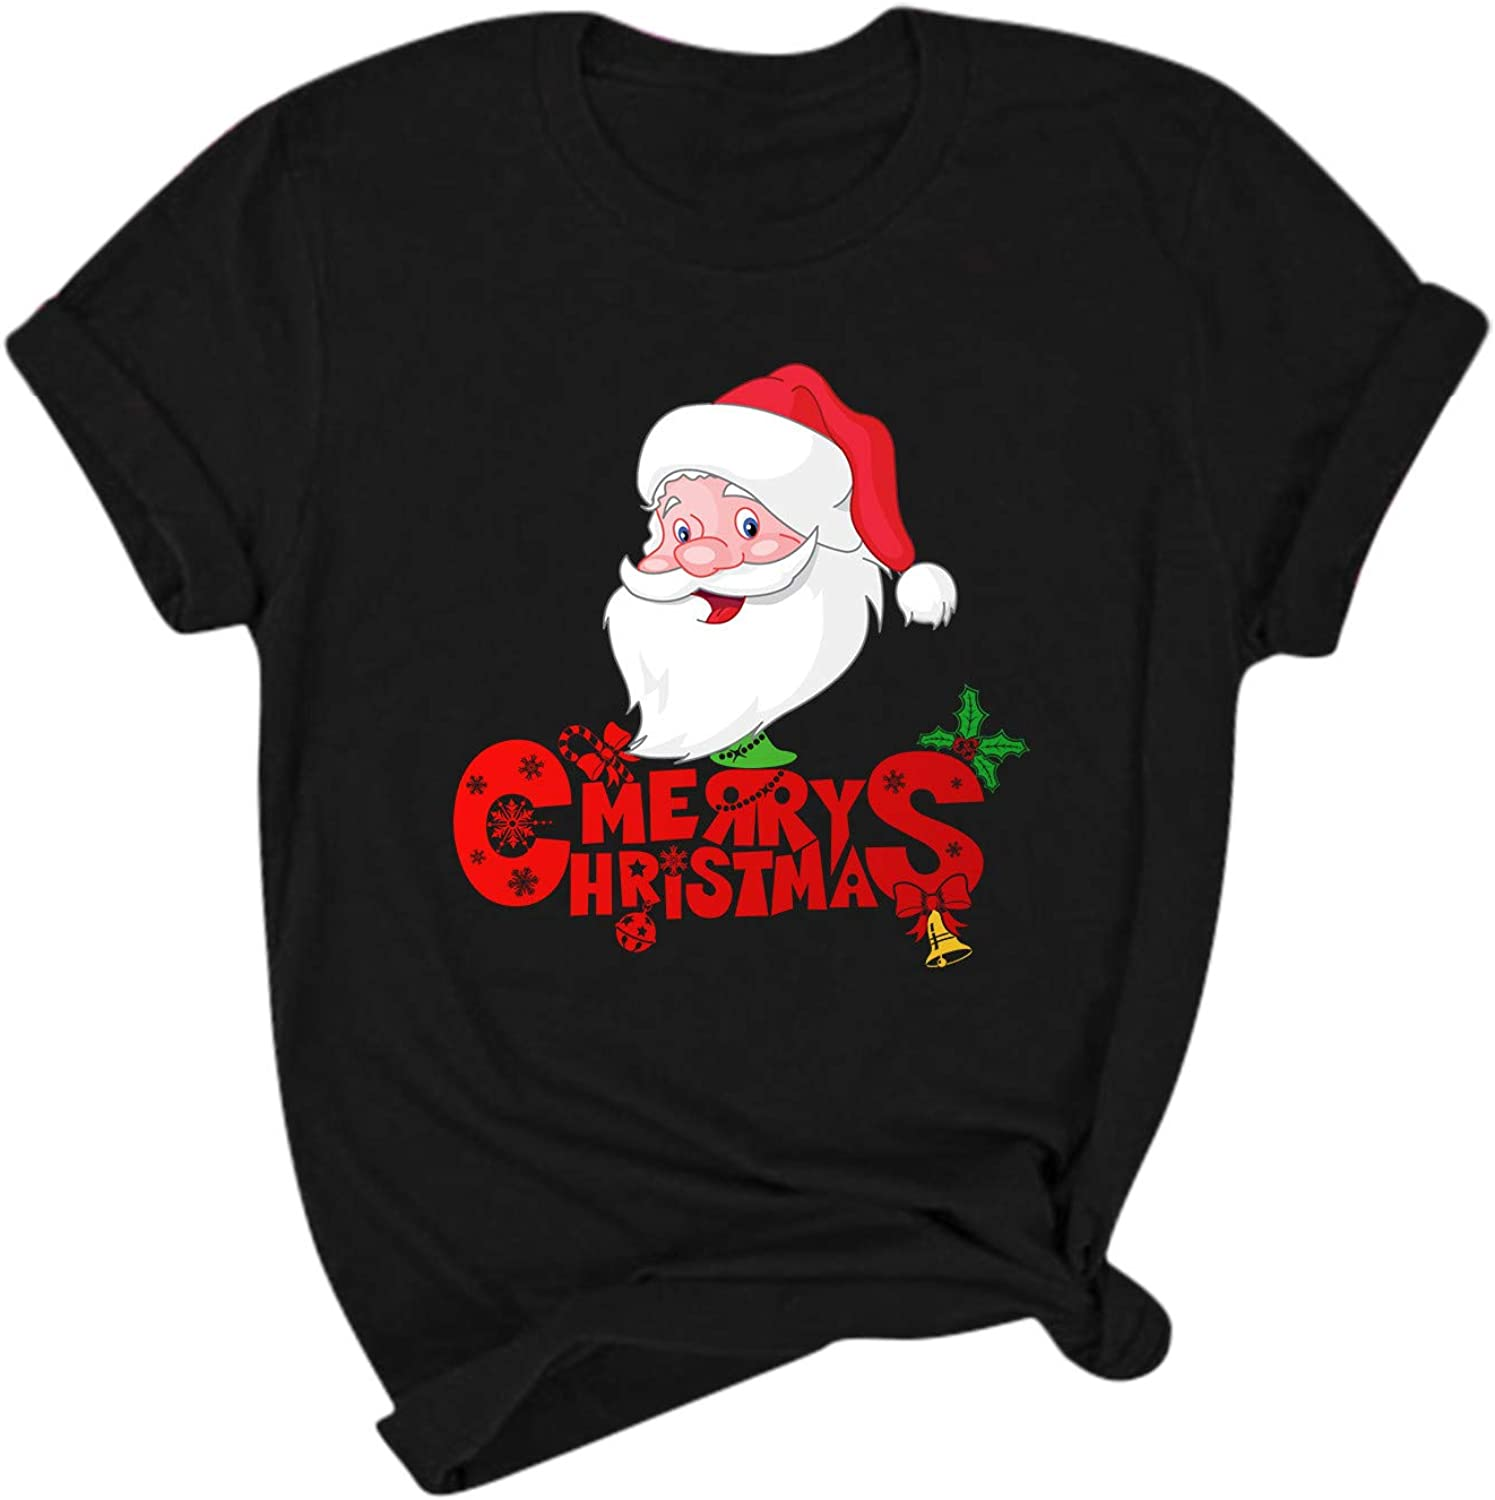 Benficial Christmas Womens Top Casual Round Neck Christmas Print Short Sleeve T-Shirt Plus Size Tops for Women